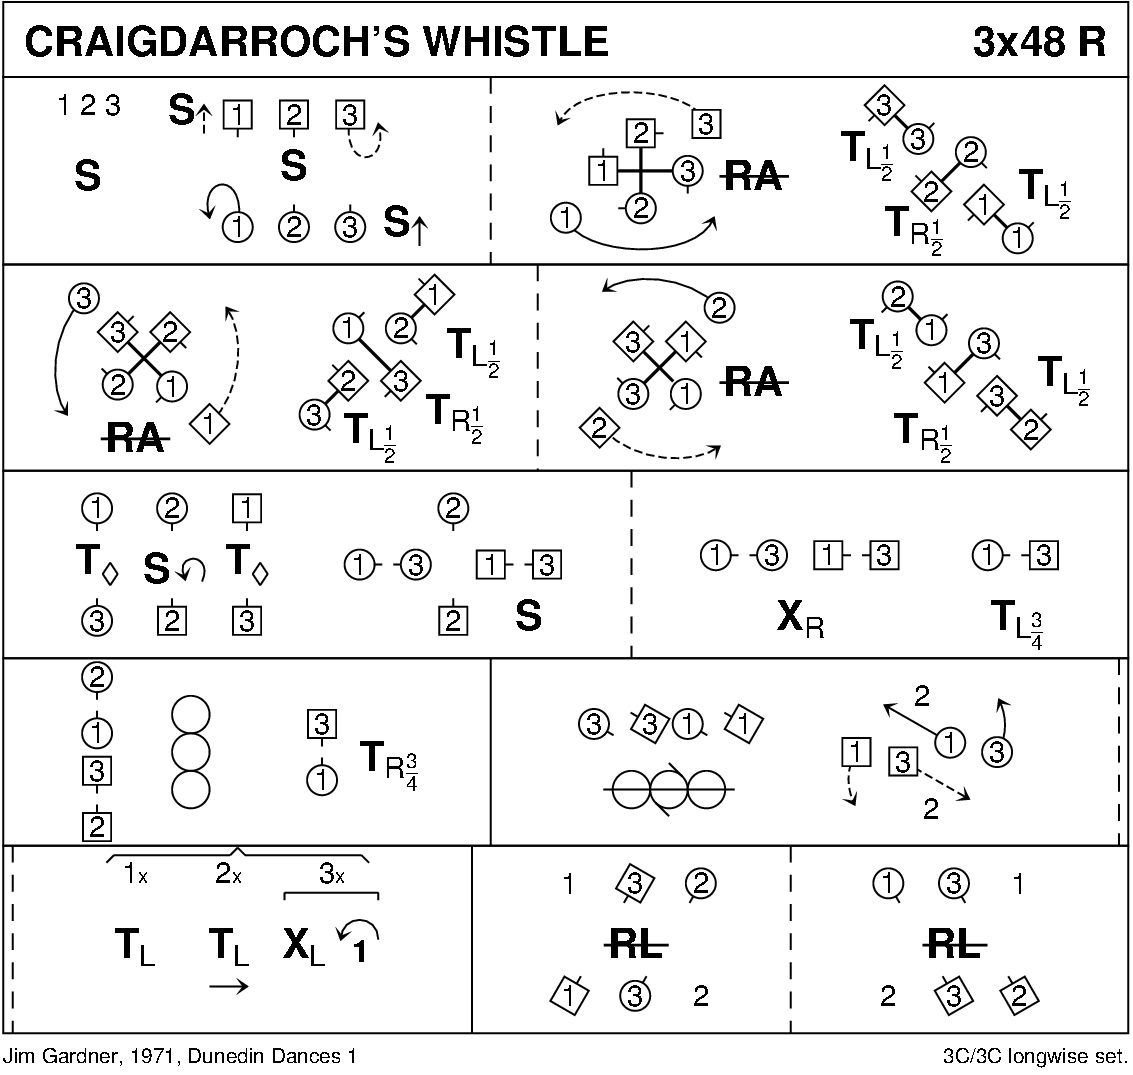 Craigdarroch's Whistle Keith Rose's Diagram